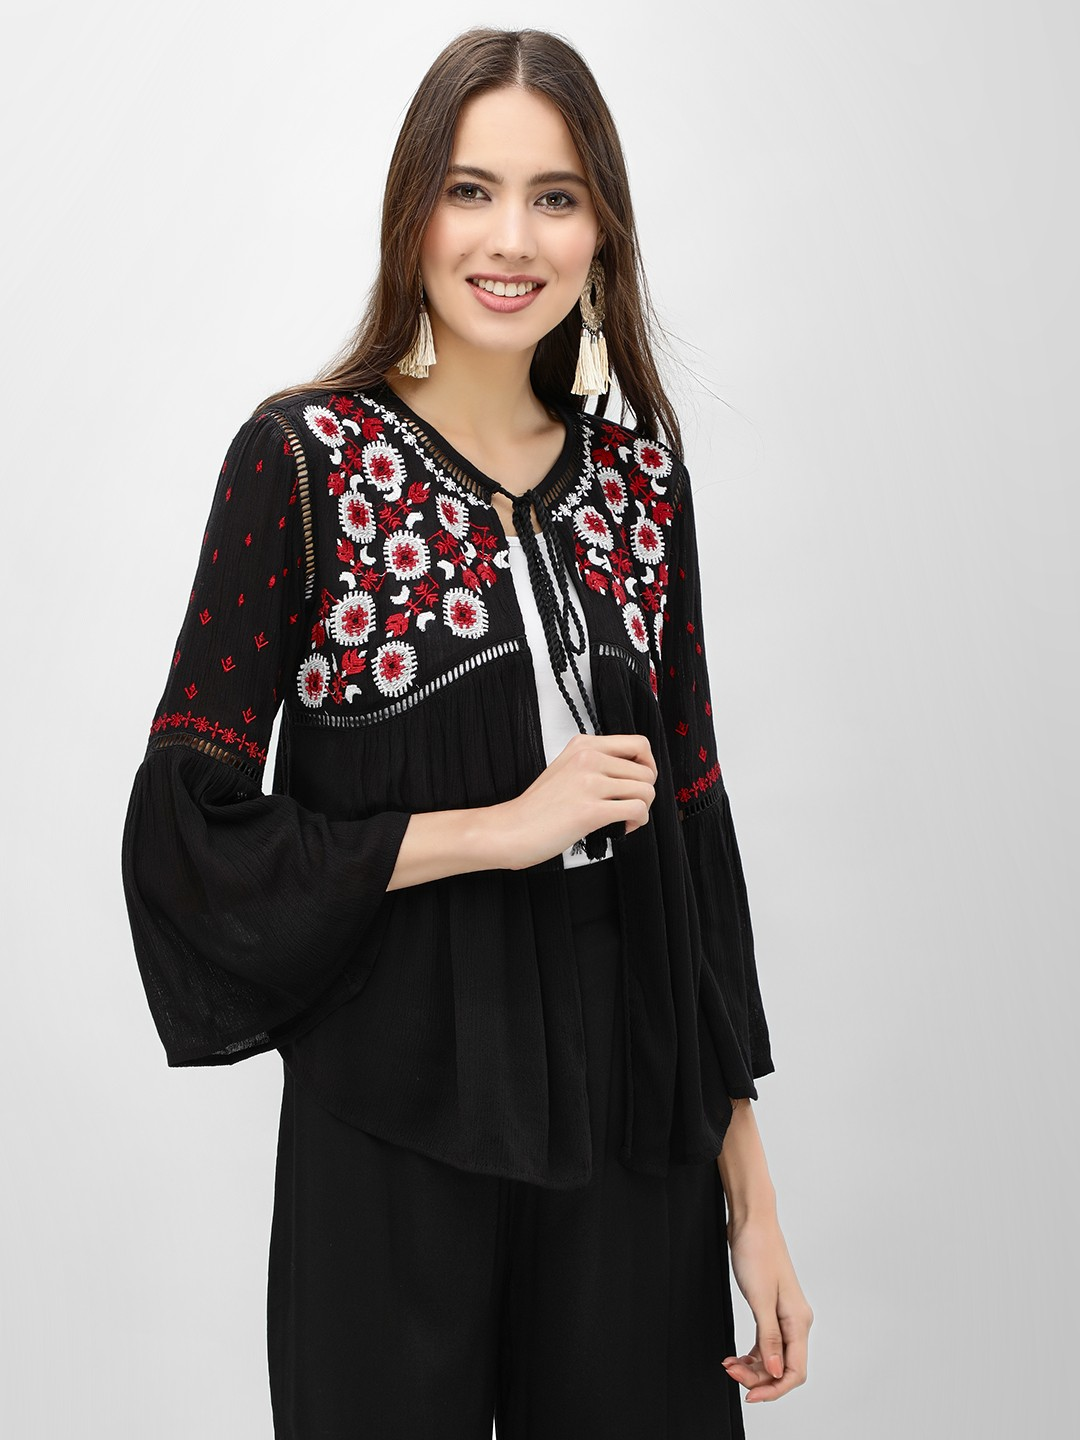 Kisscoast Black Embroidered Yoke Tie Knot Shrug 1